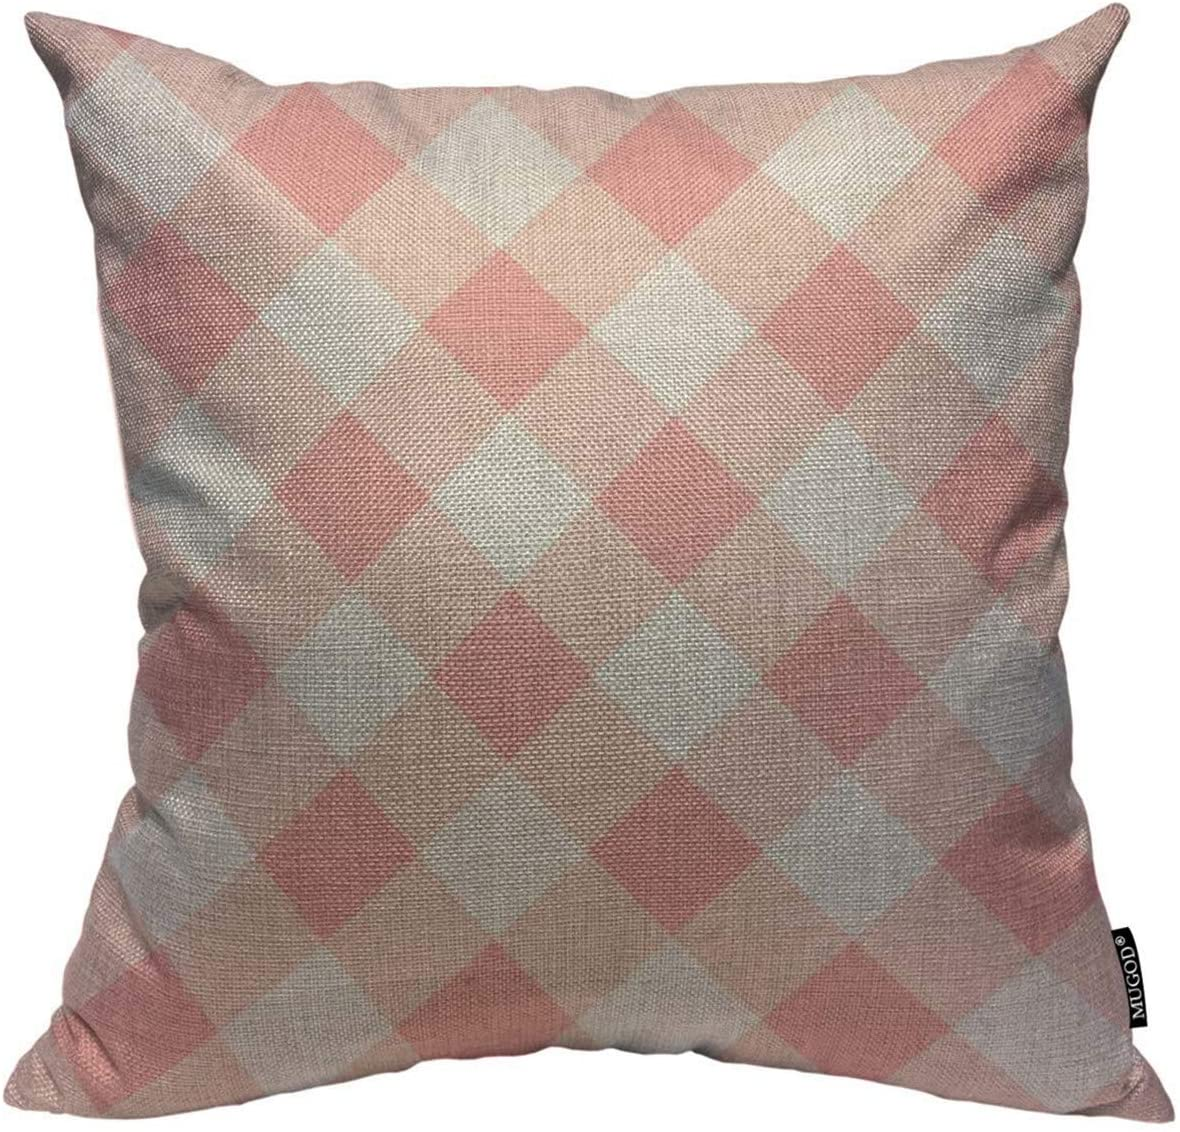 Mugod Throw Pillow Cover Pink and White Buffalo Plaid Home Decorative Linen Square Pillow Case for Men Women Boy Gilrs Bedroom Livingroom Cushion Cover 18x18 Inch Pillowcase